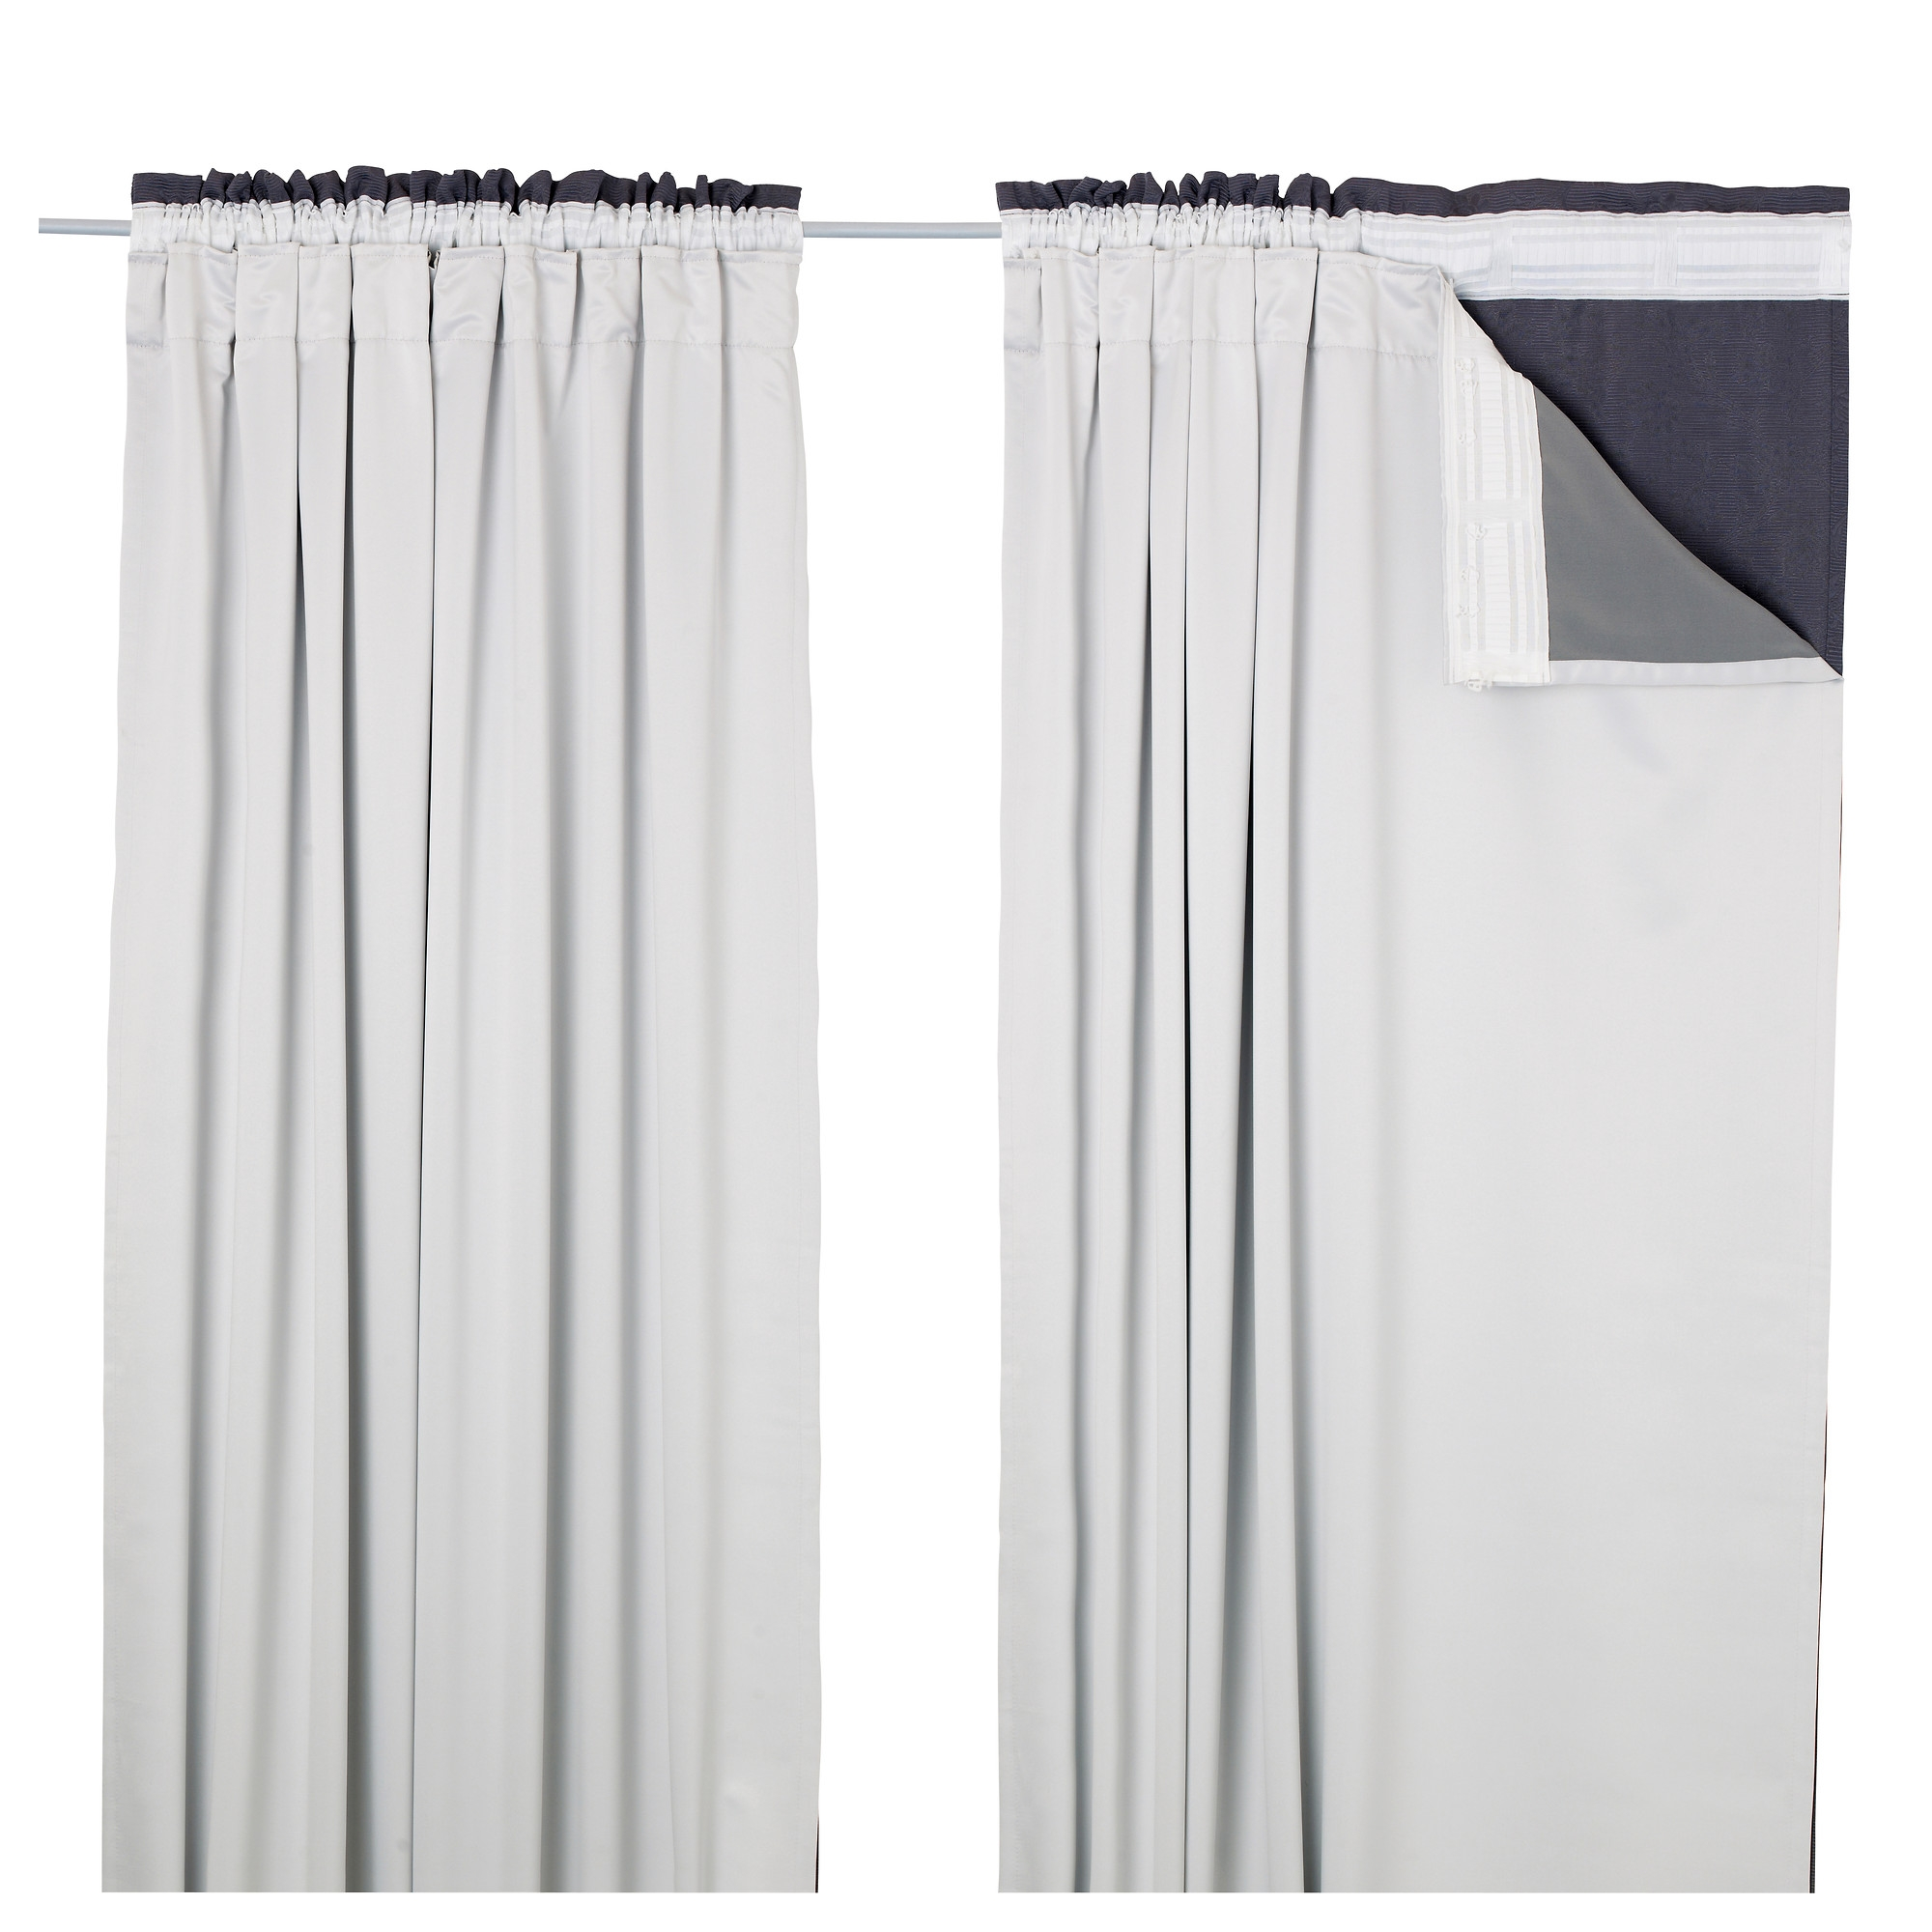 Glansnva Curtain Liners 1 Pair 56×114 Ikea For Thermal Lined Blackout Curtains (View 9 of 15)